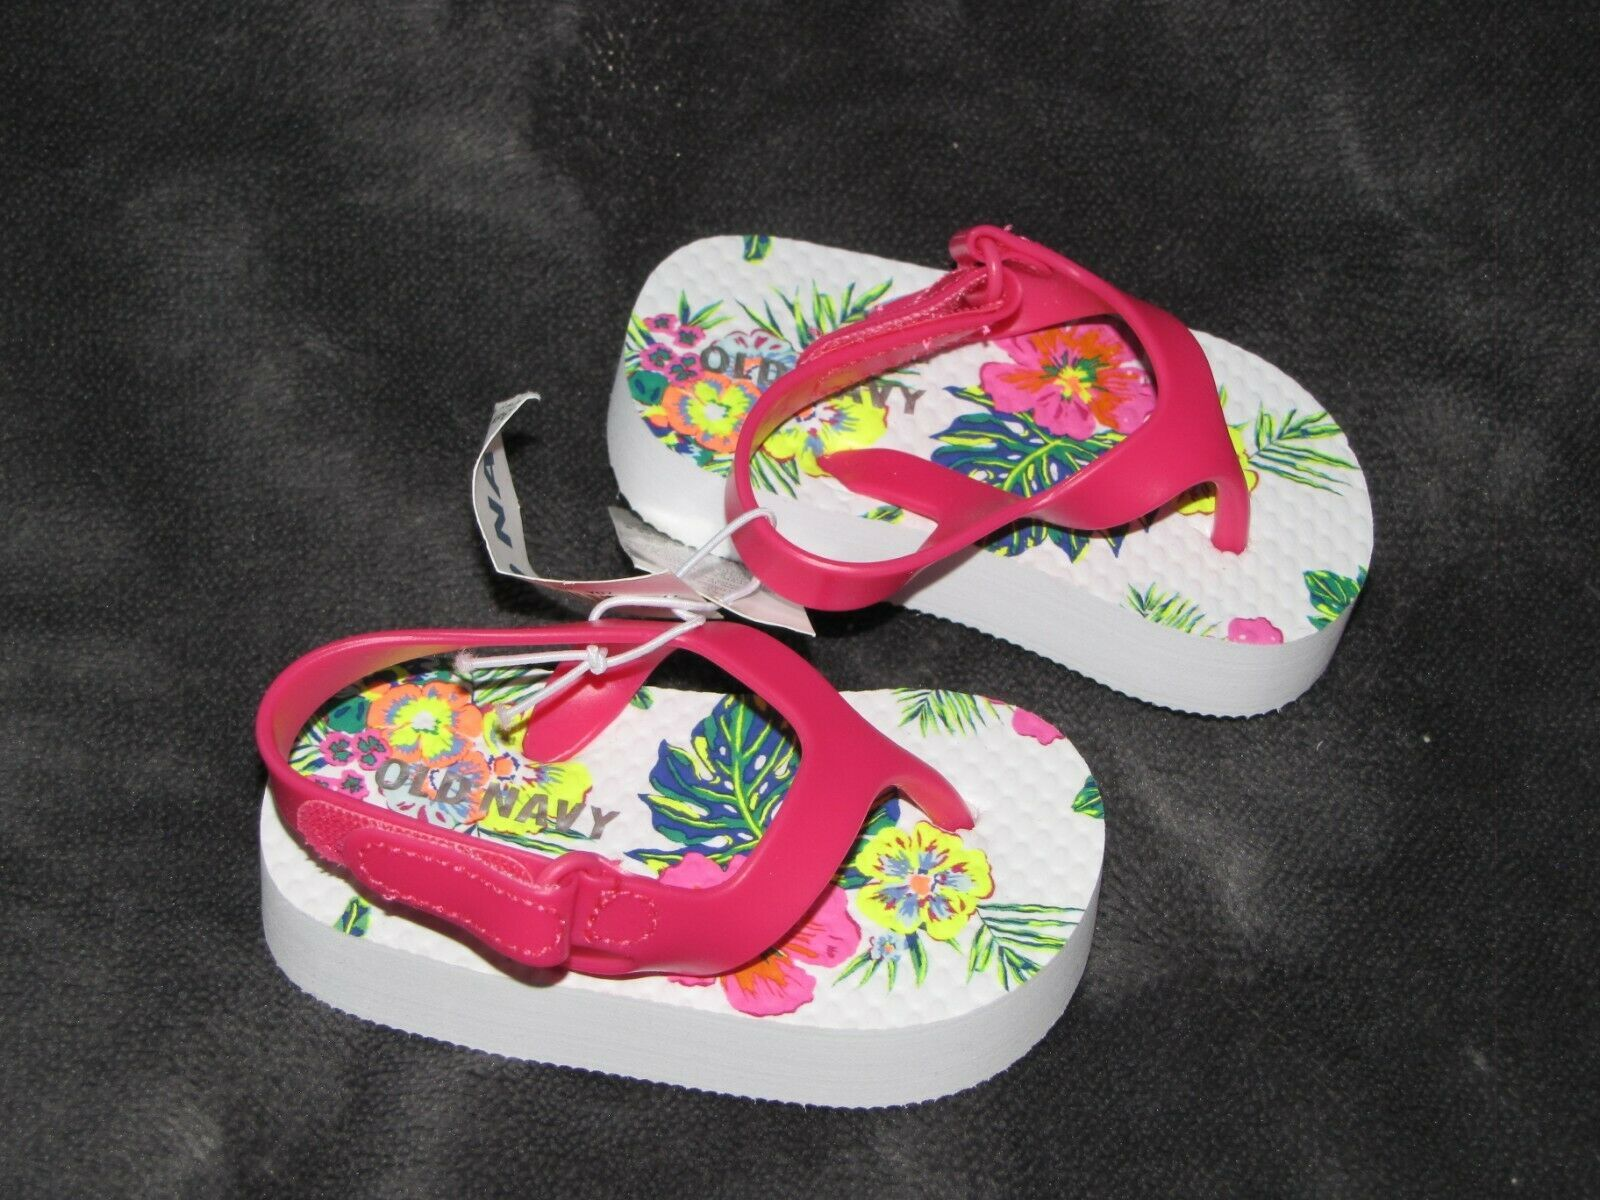 OLD NAVY BABY GIRL TROPICAL HAWAIIAN SANDALS HOT PINK SWIM SUMMER CLOTHES 3-6